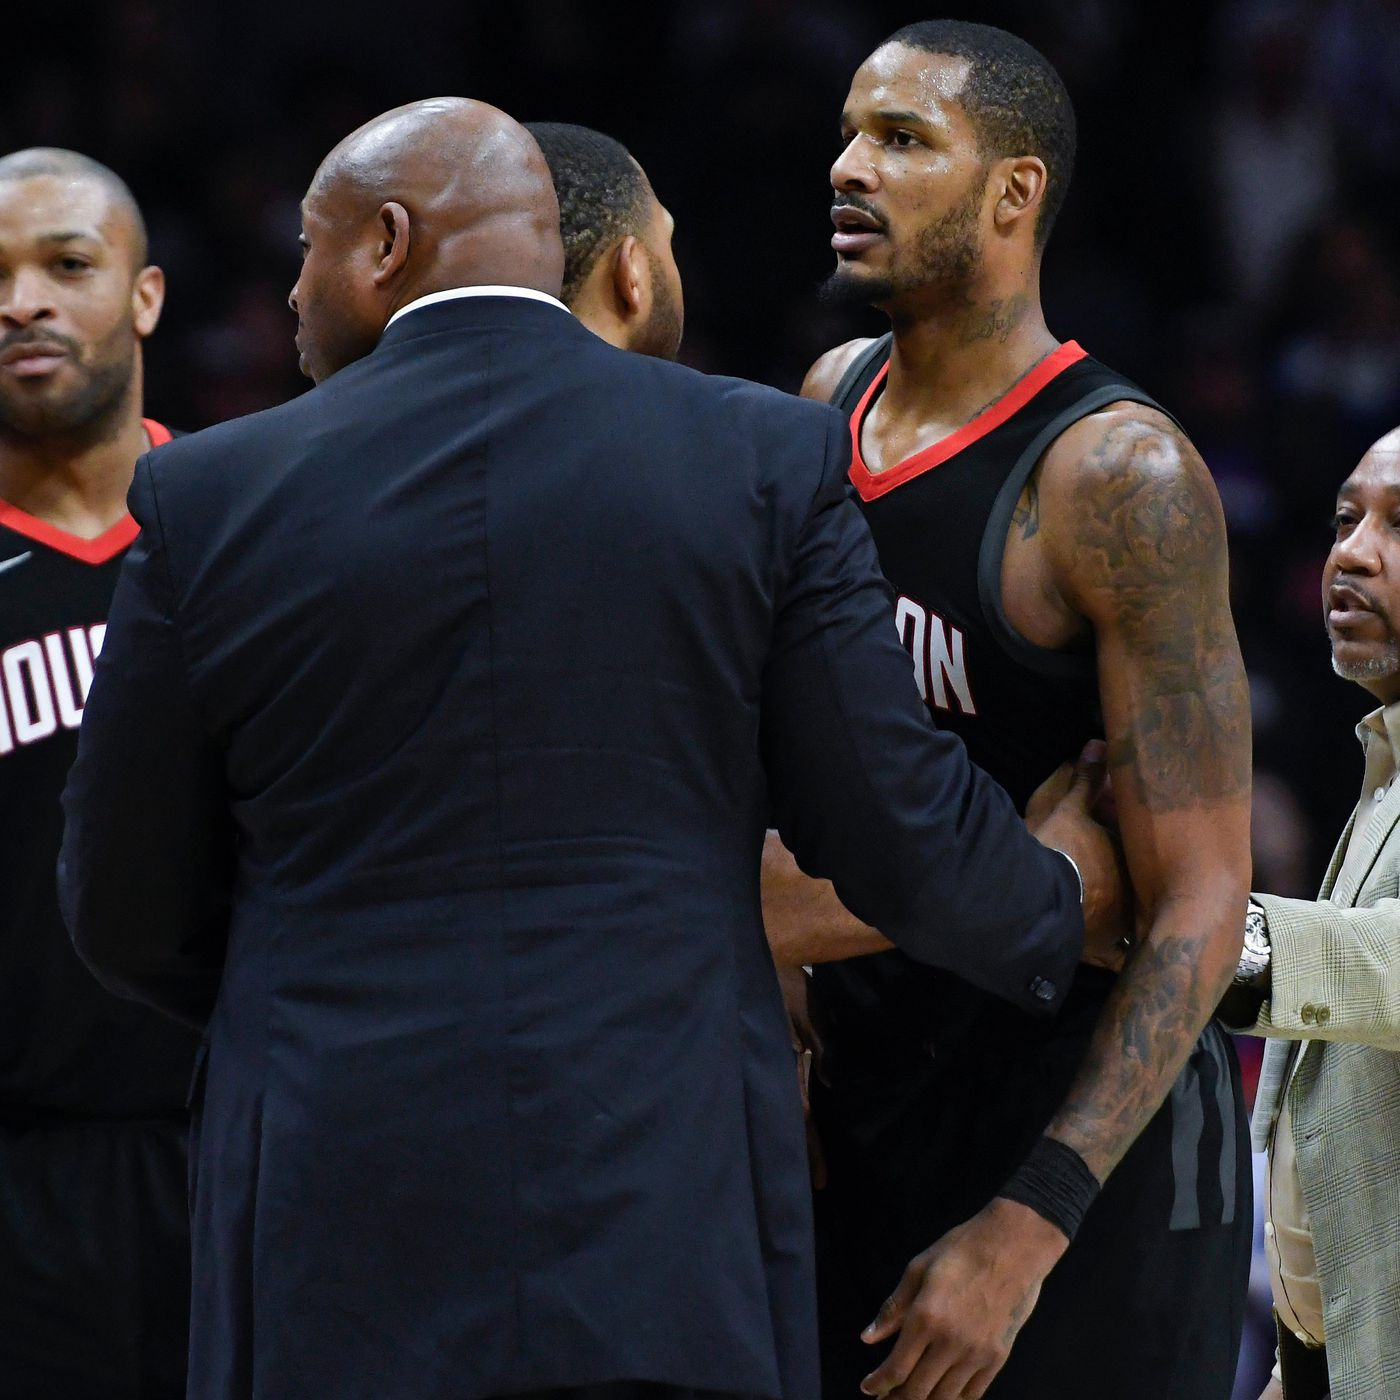 7a0ae9573d51 Clippers vs. Rockets  Here s how the locker room fight went down -  SBNation.com